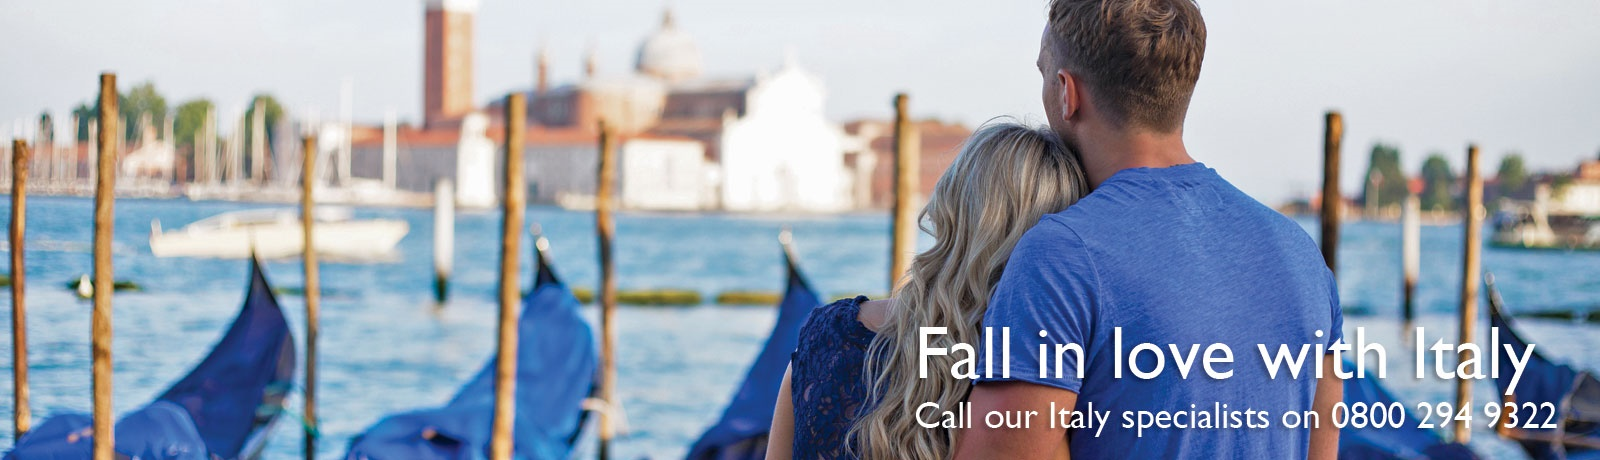 Fall in love with Italy